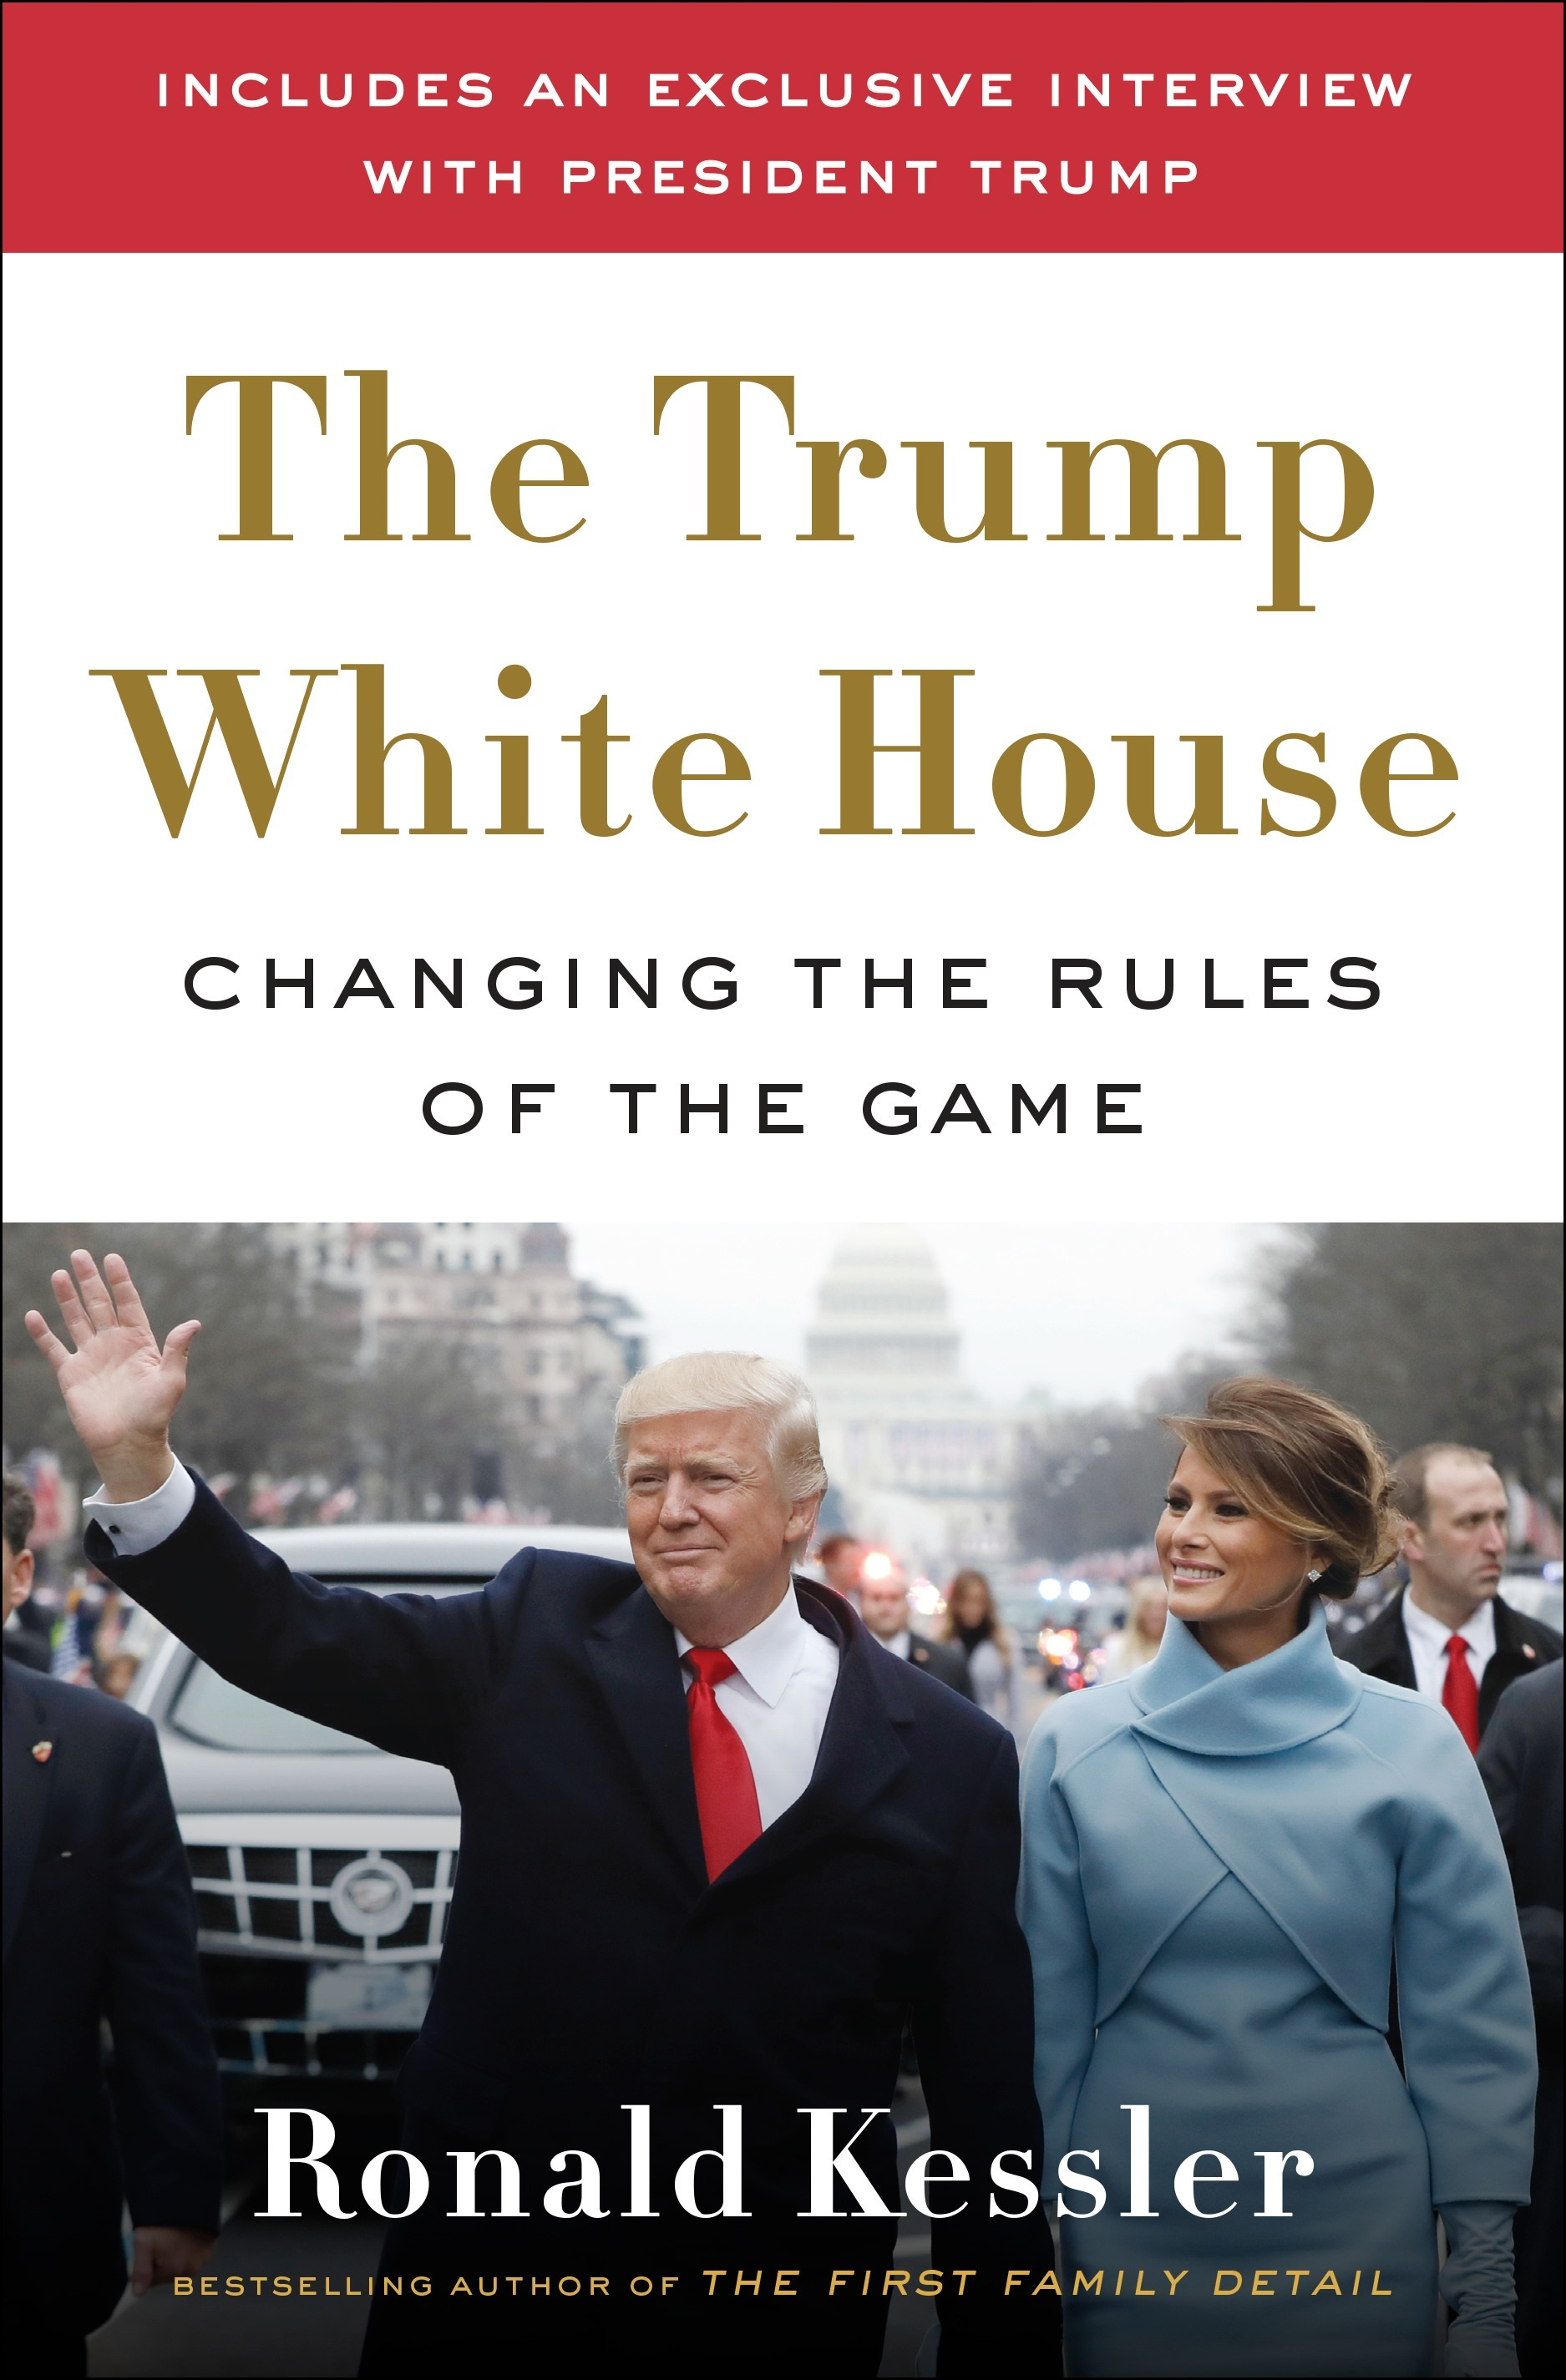 The Trump White House Changing the Rules of the Game